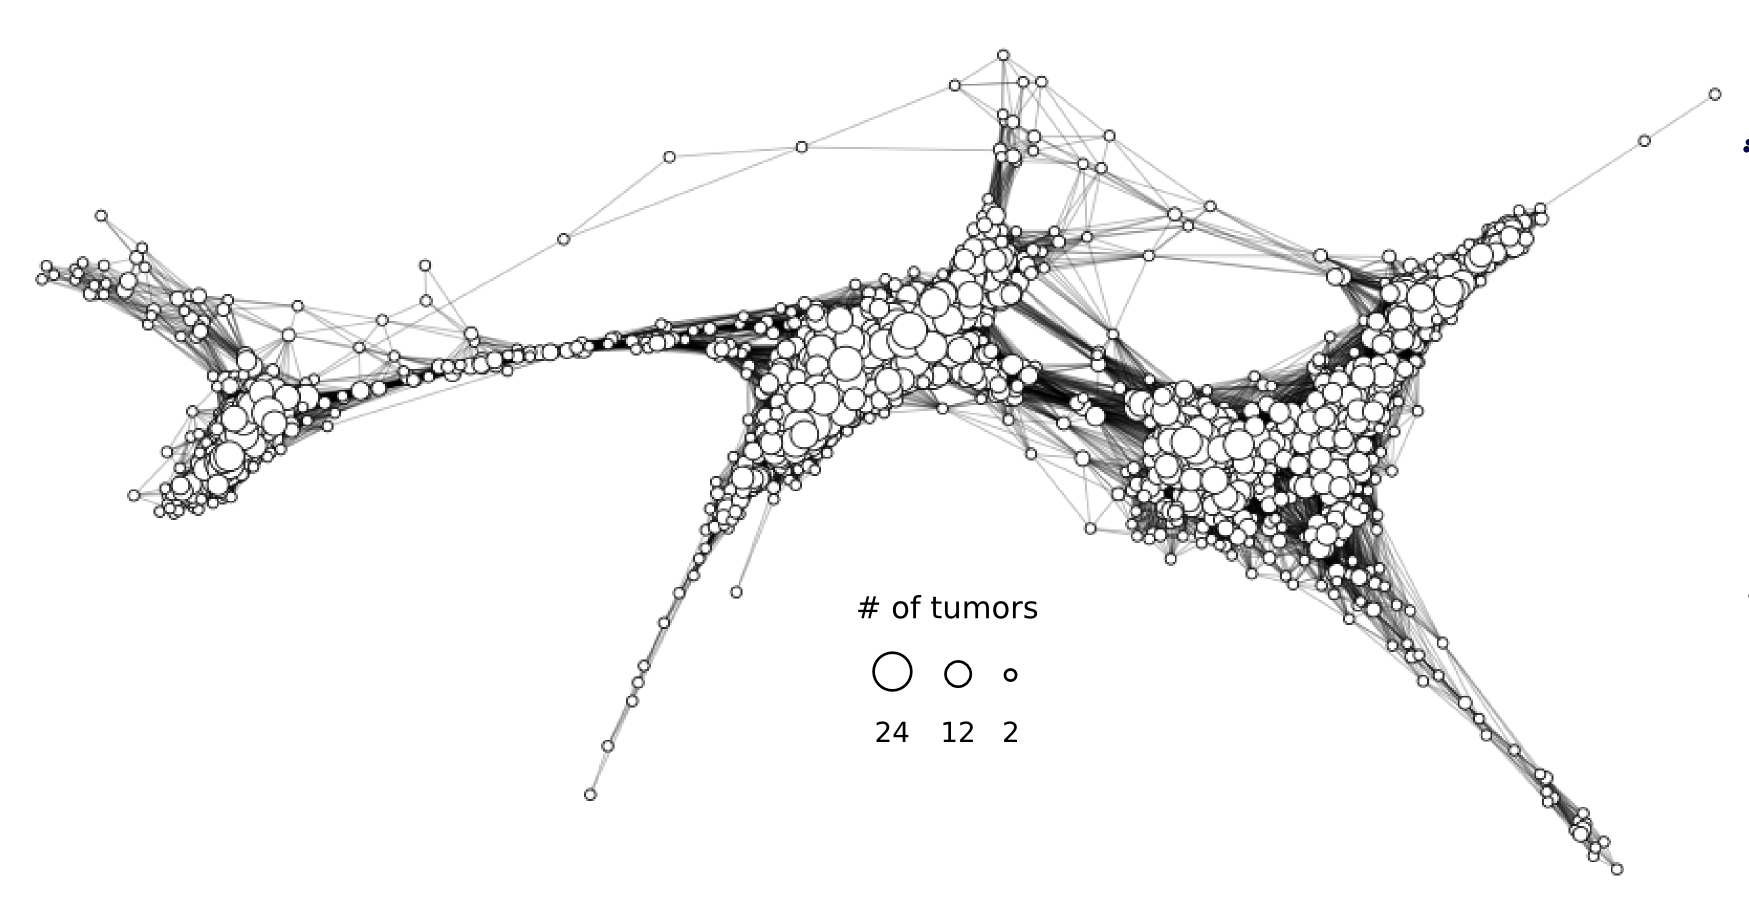 Topological reconstruction of the expression space of low-grade glioma